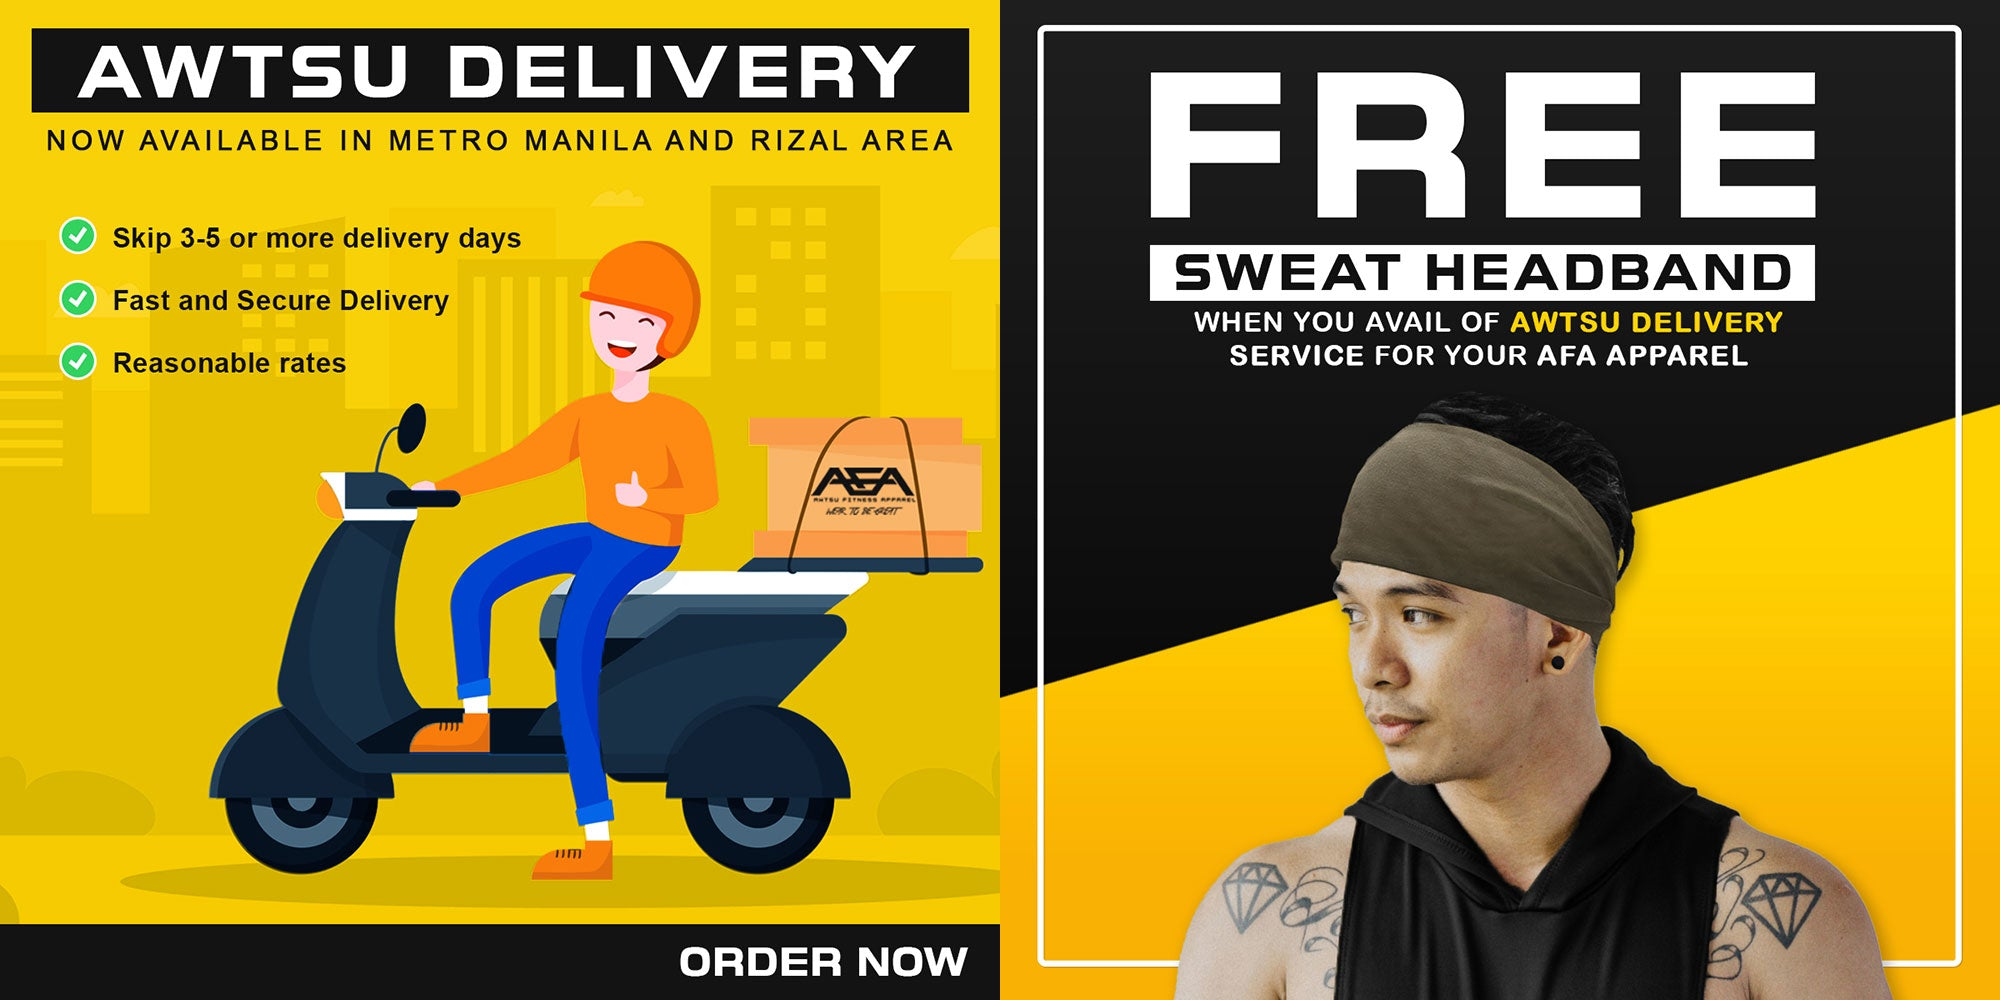 Awtsu Fitness Apparel Express Delivery, Cash on Delivery, Free Sweat Headband